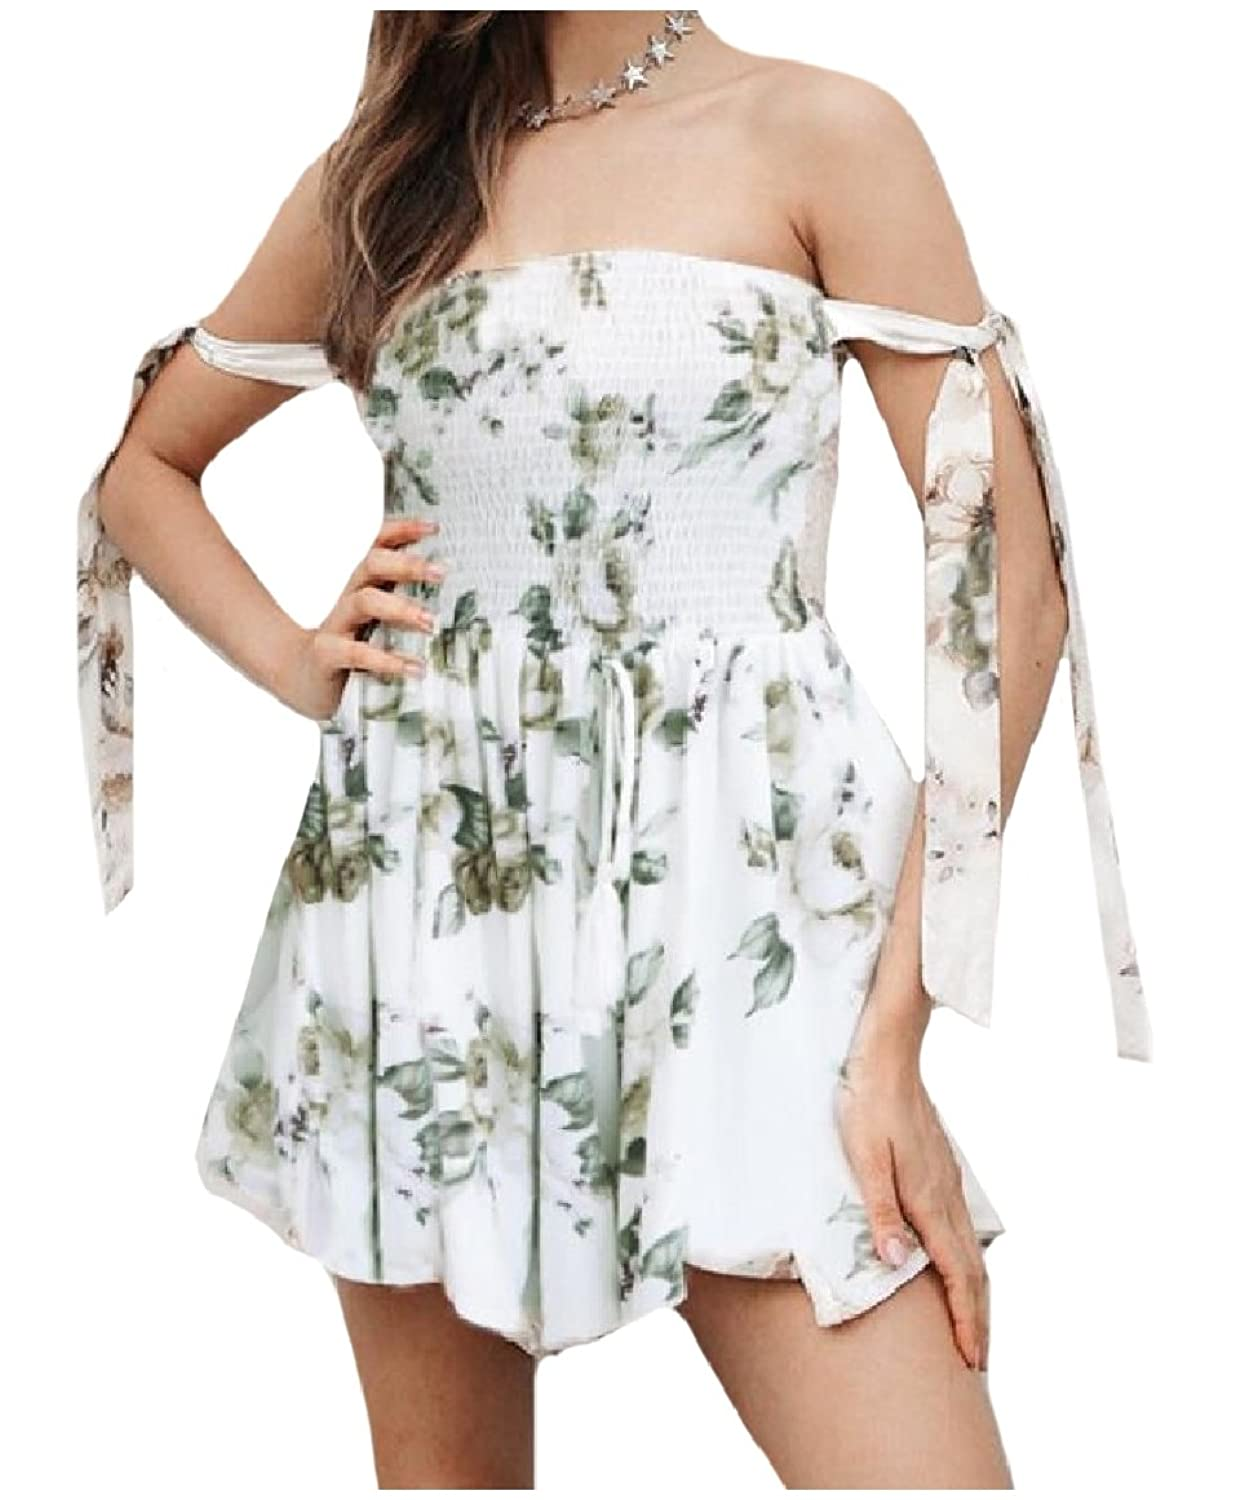 Abetteric Women's Sleeveless Off-Shoulder Strappy Beachwear Leisure Casual Floral Printing Playsuit Shorts Rompers